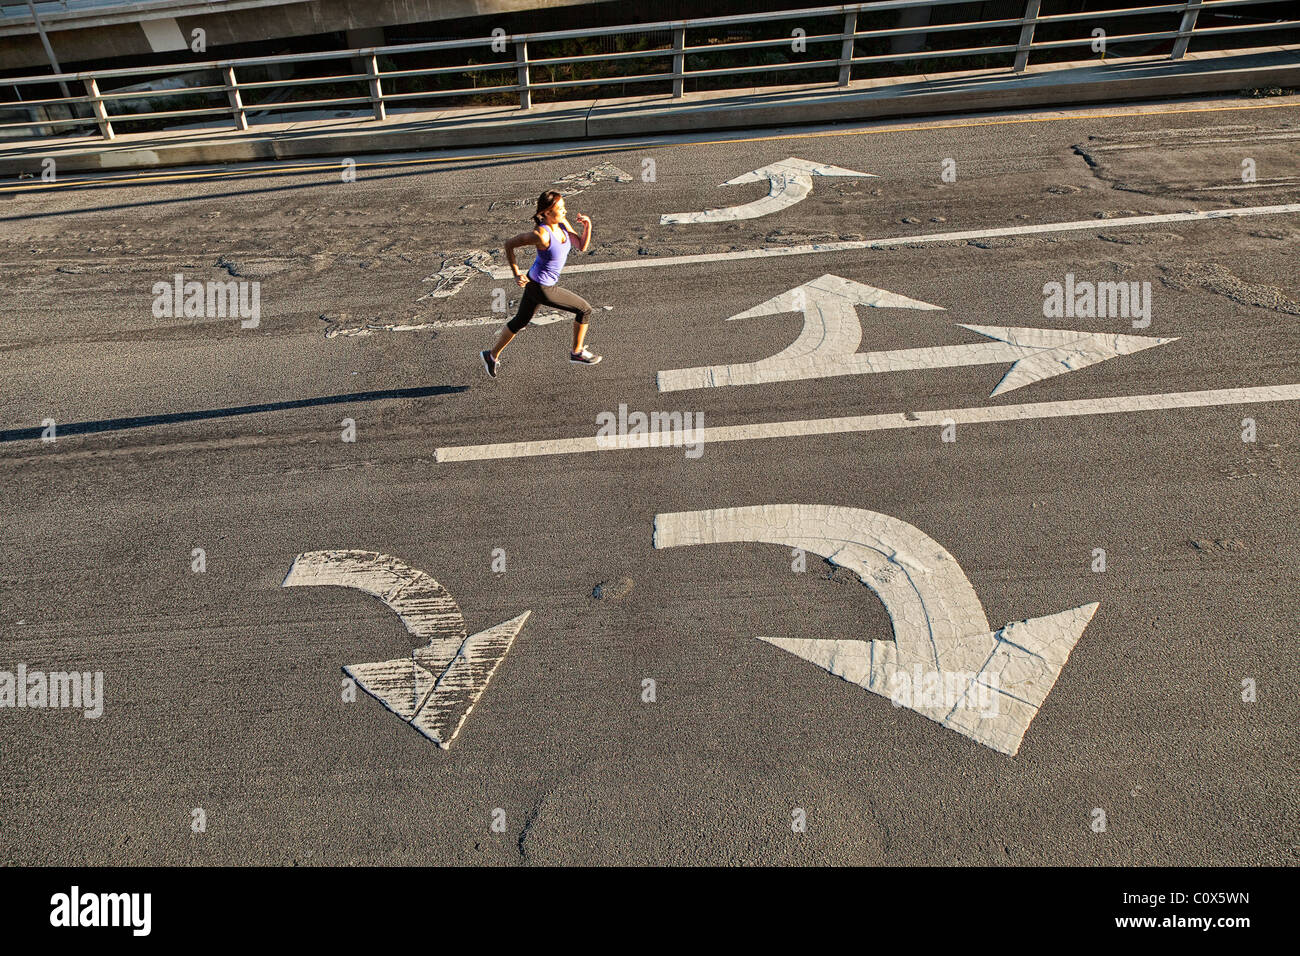 Female runner running on urban city street bridge, overpass with directional arrows painted on pavement - Stock Image